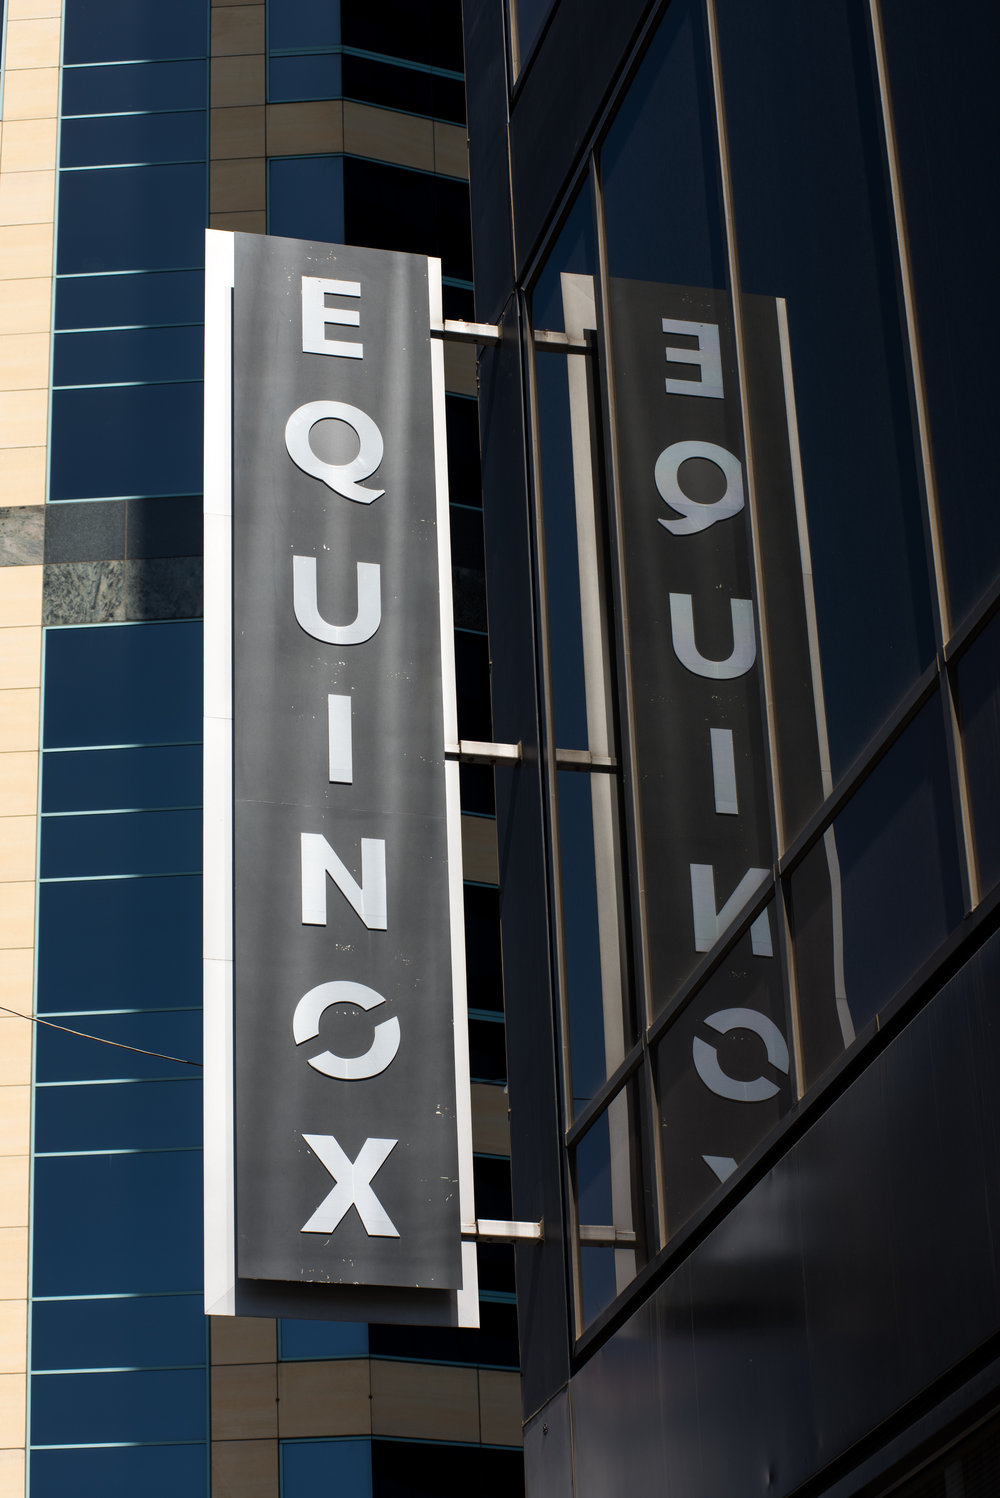 Equinox sign outside of a Equinox gym in Los Angeles. Equinox is a luxury gym that is headquartered in New York City.